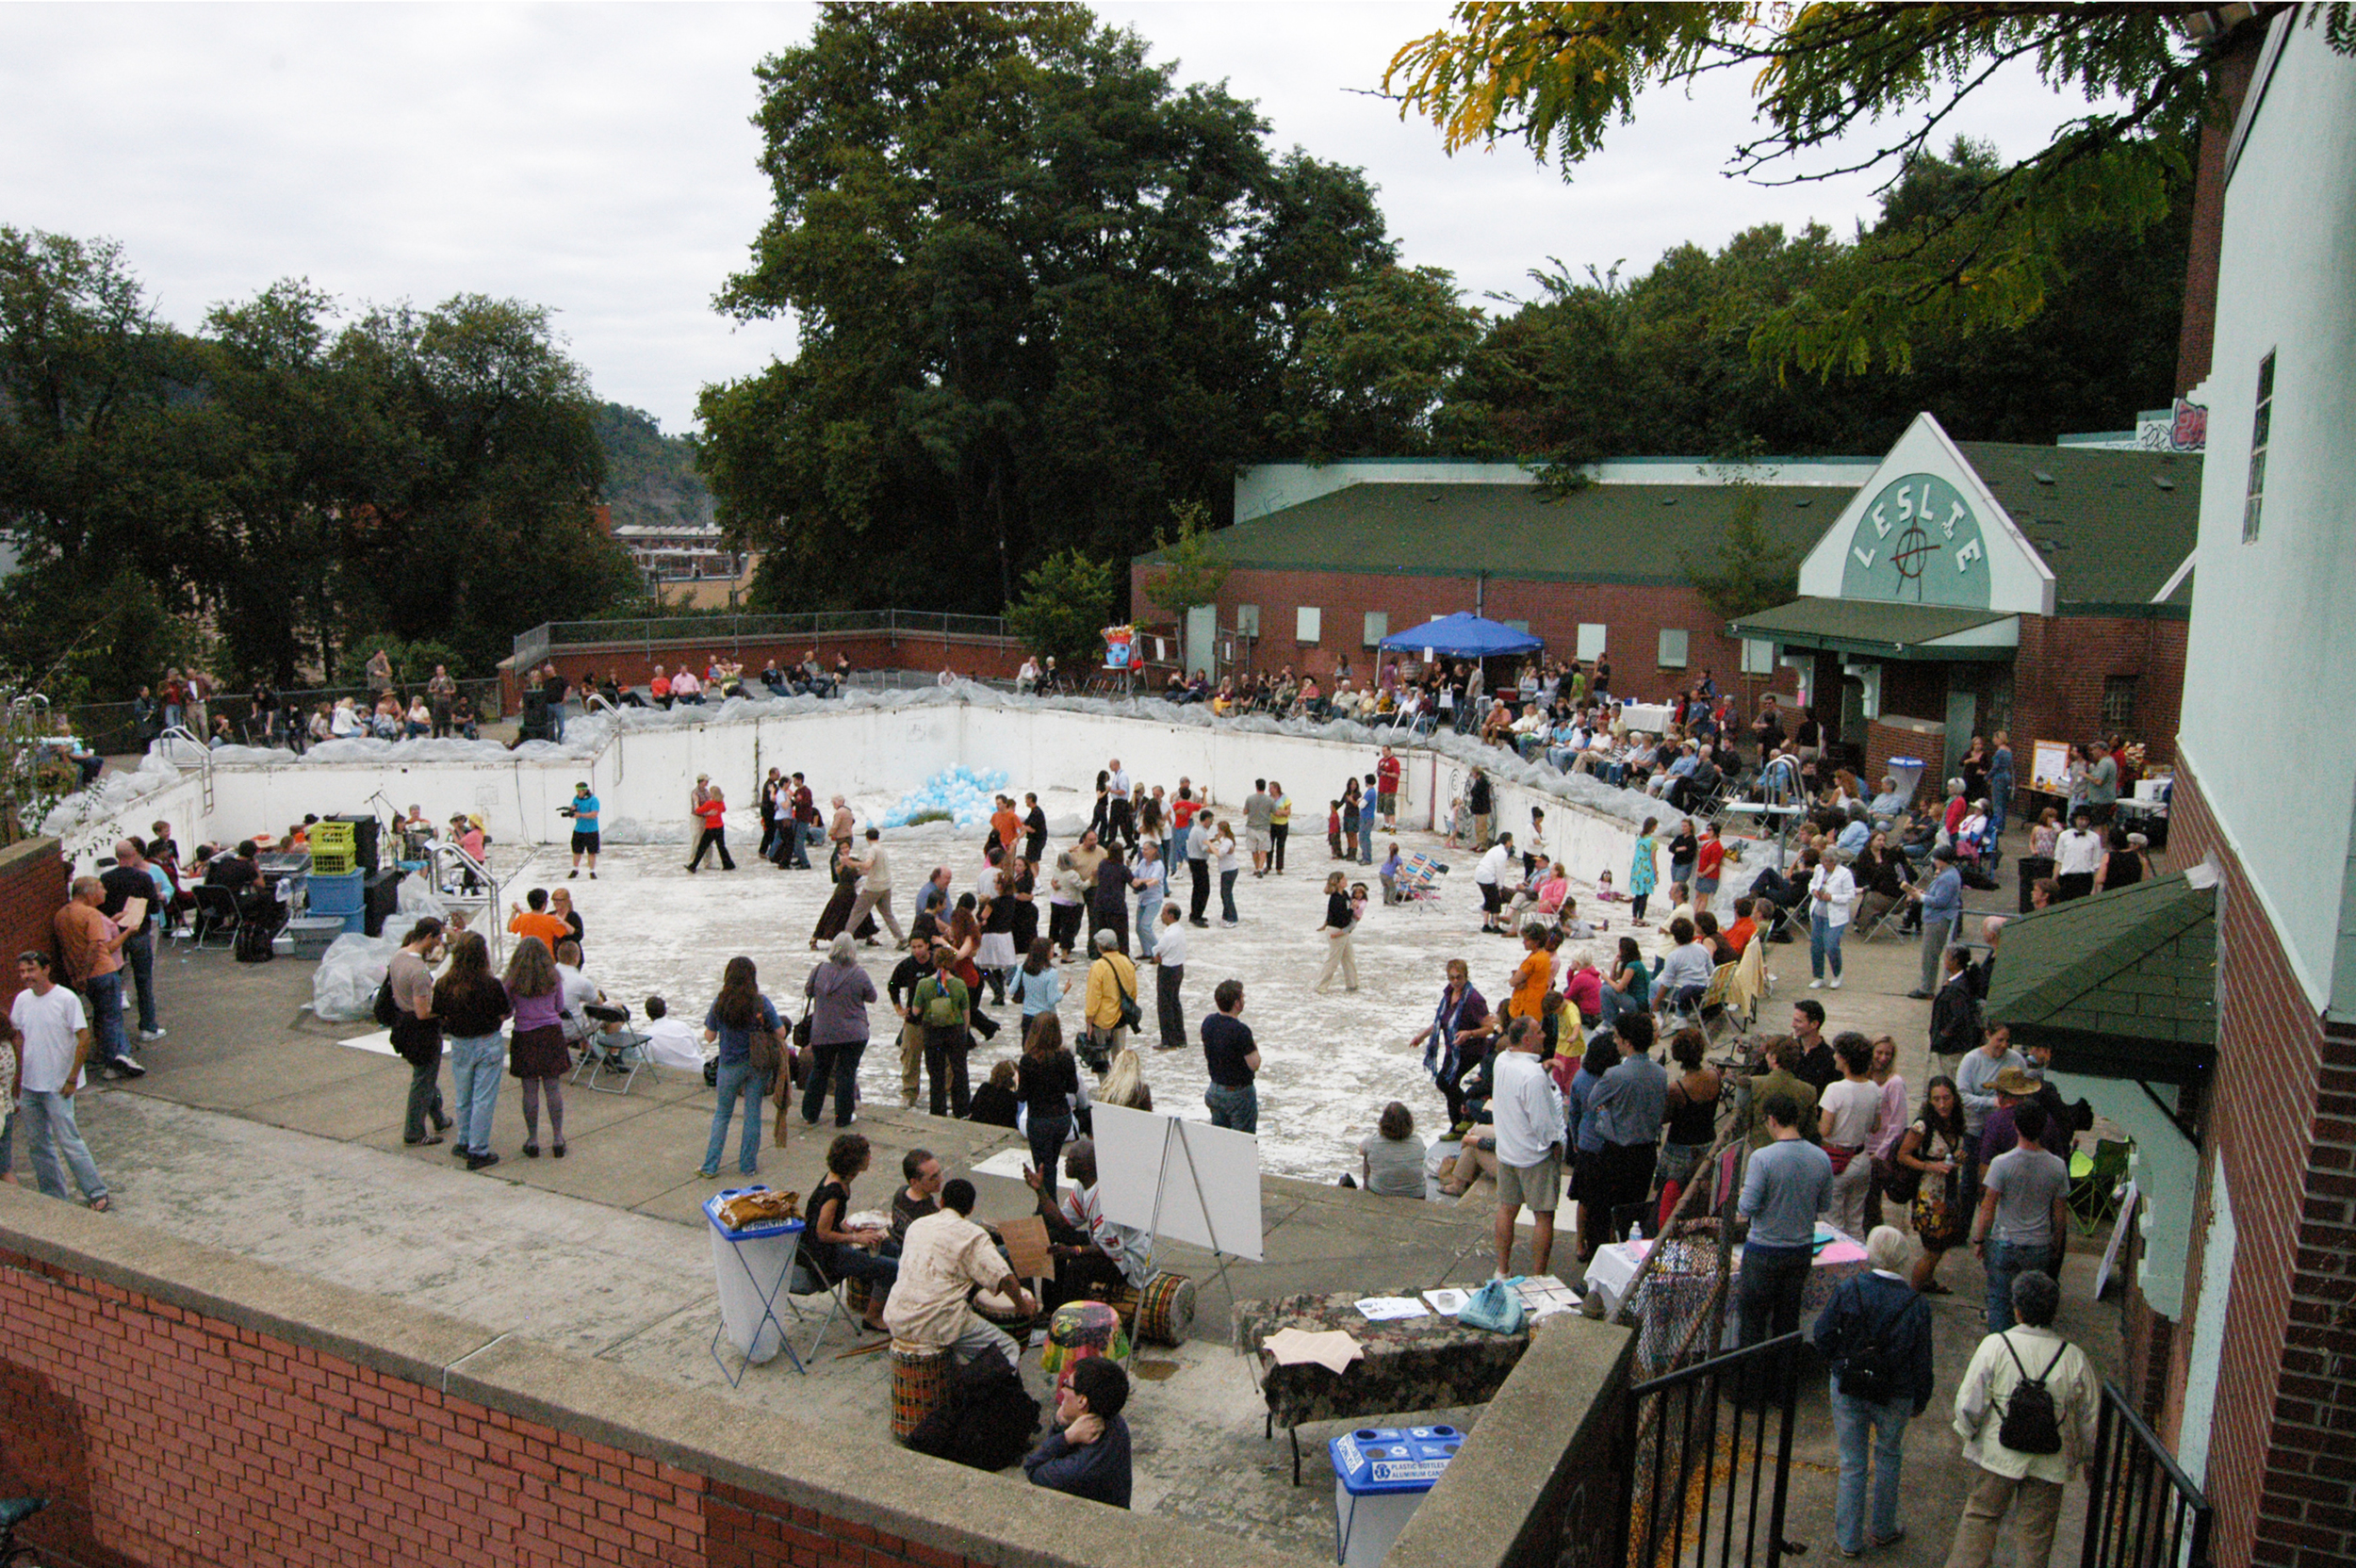 At a LLPC event prior to UDBS involvement, over 500 people attend an accordion pool party.